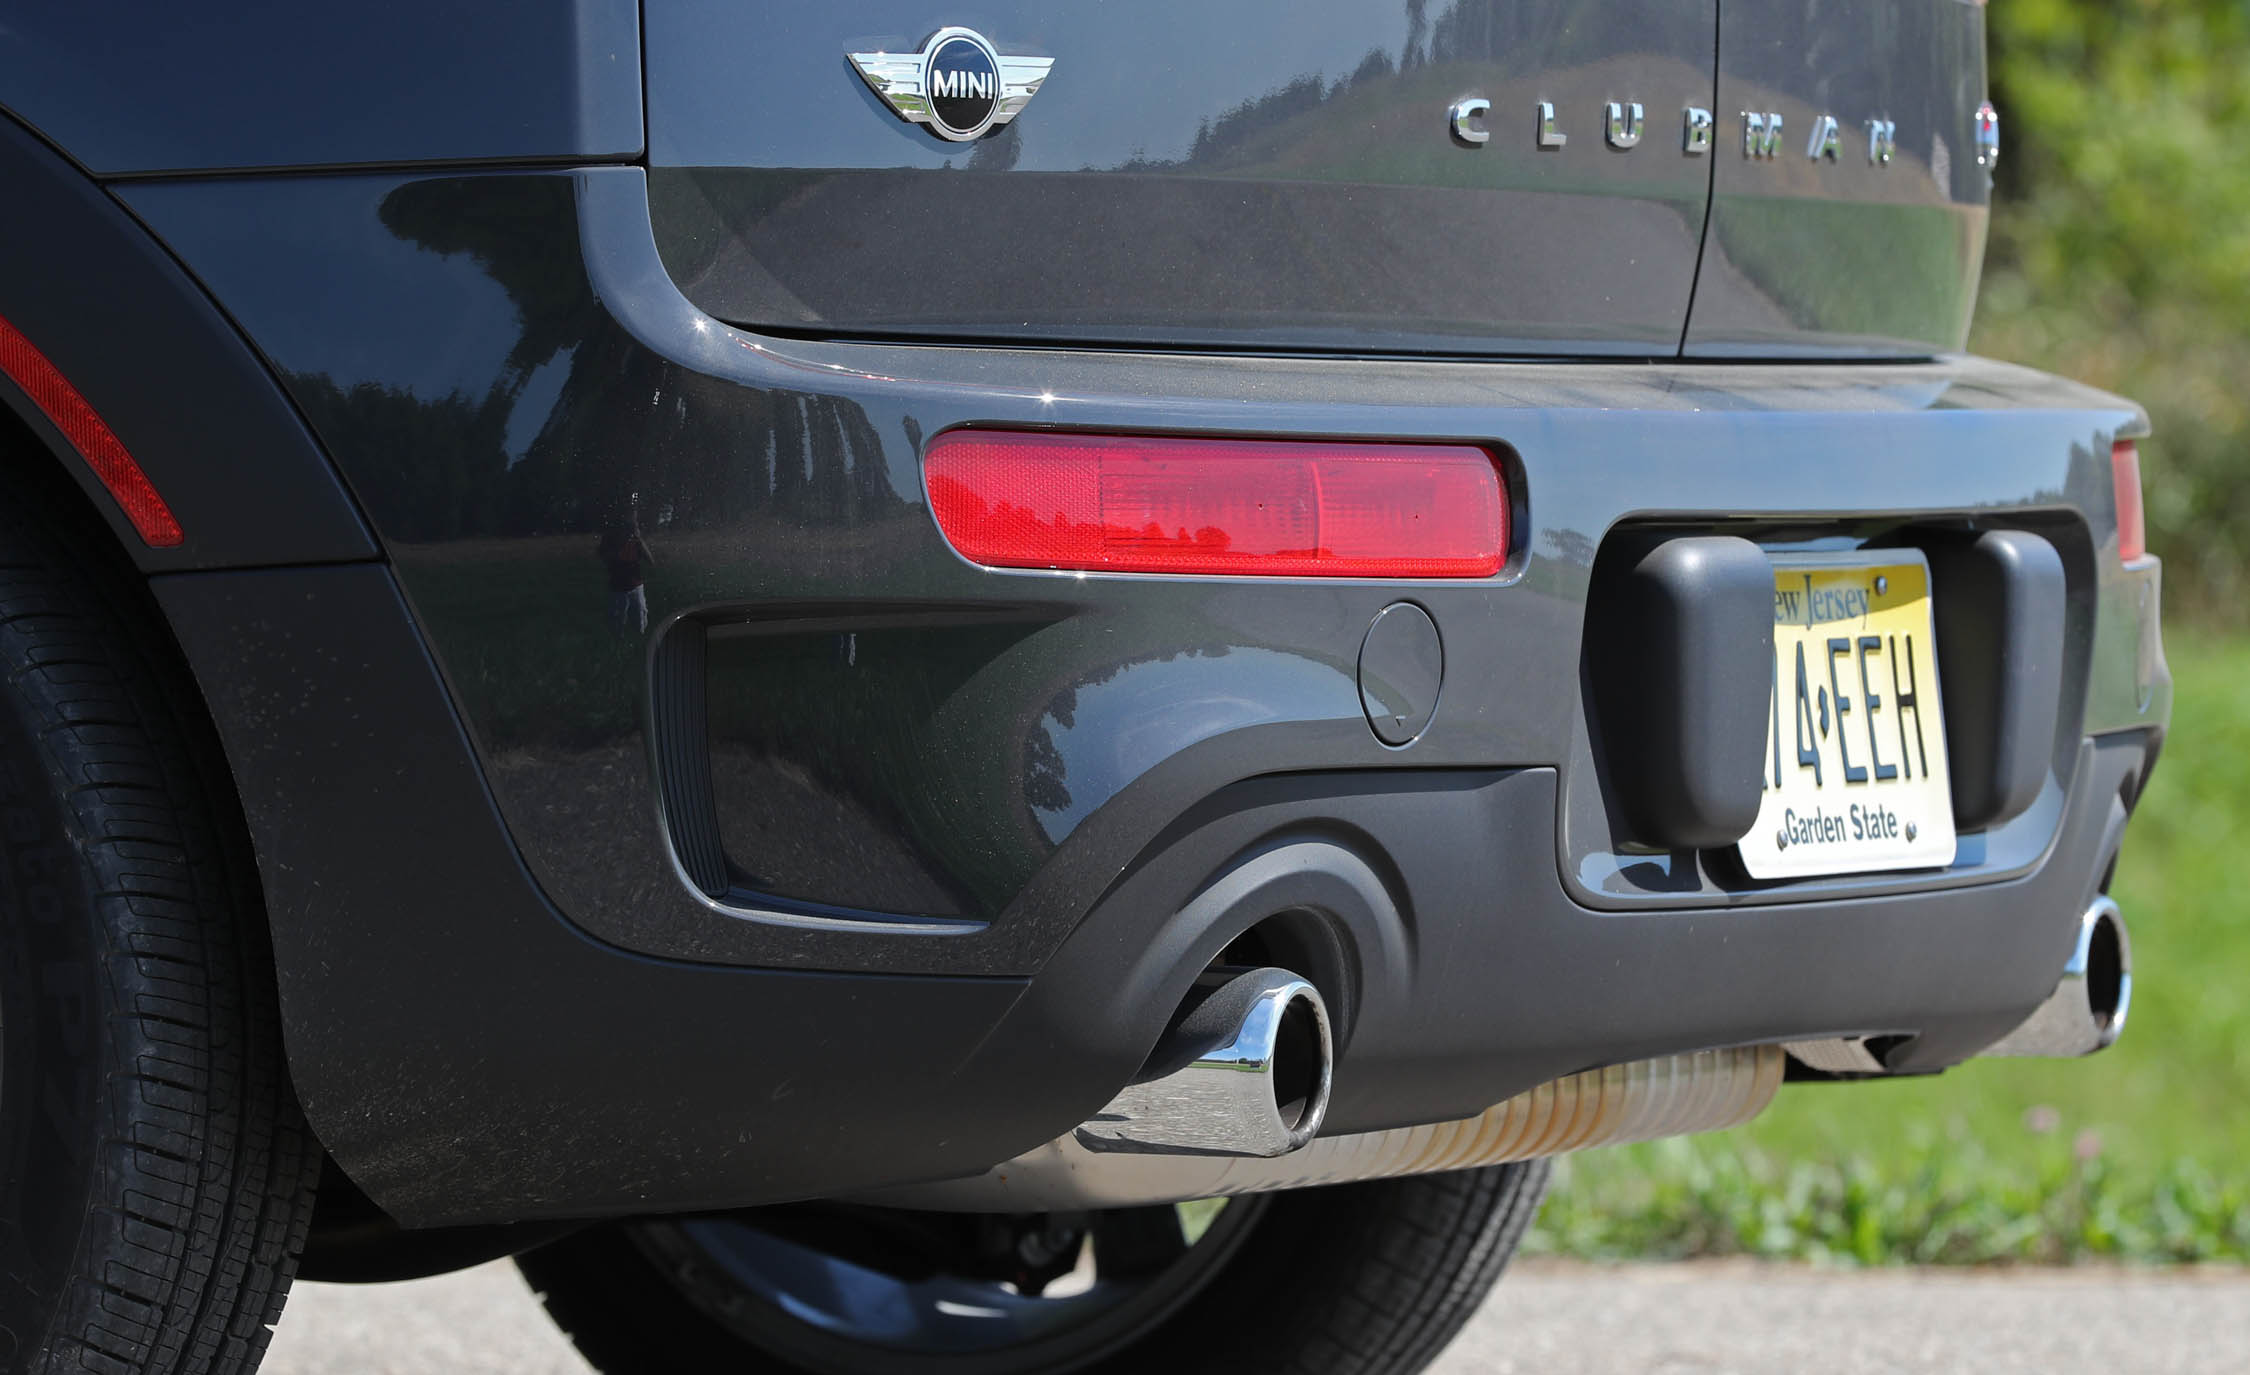 2017 Mini Cooper S ALL4 Clubman Exterior View Rear Bumper (Photo 14 of 29)